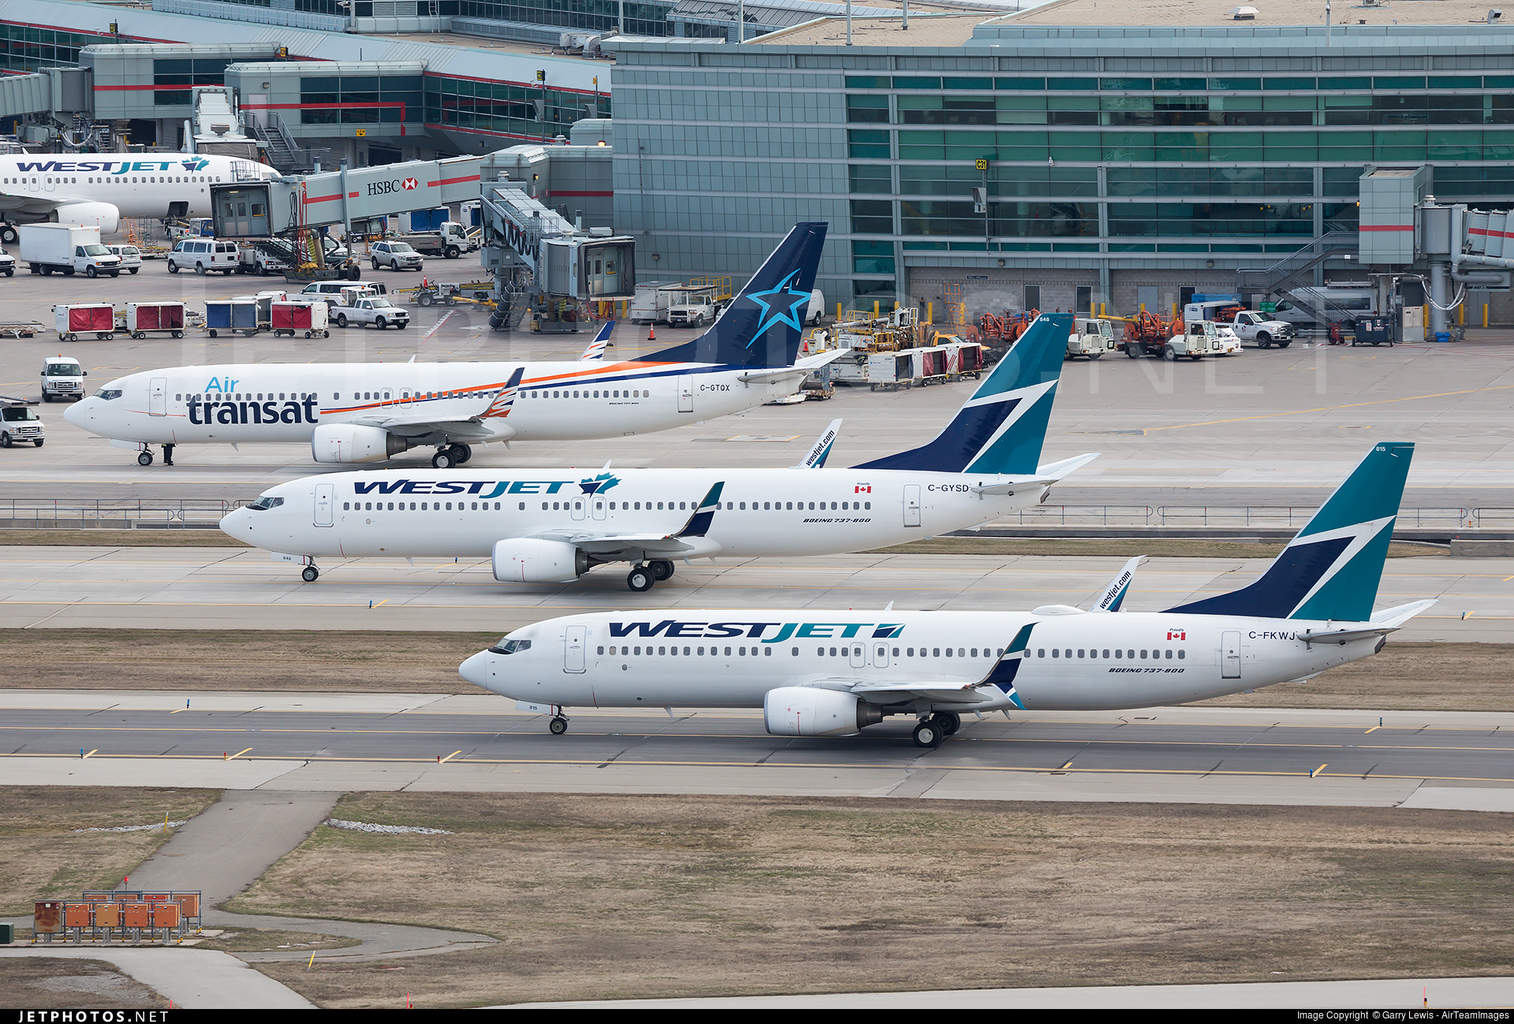 Delta Air Lines looking into purchasing WestJet shares?